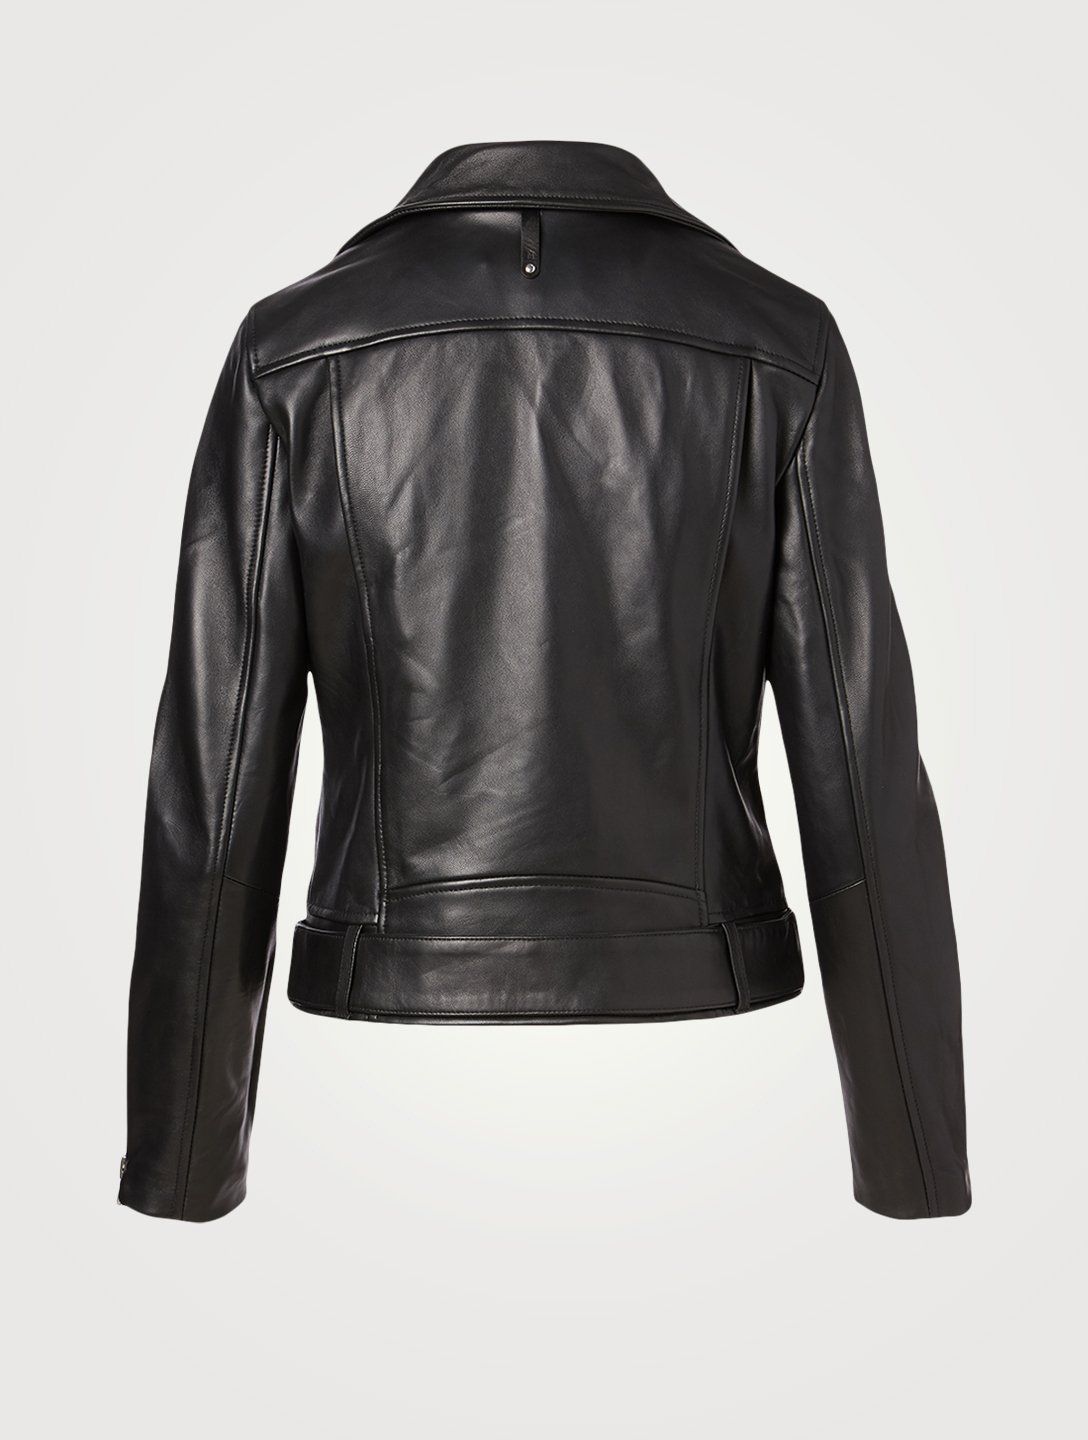 MACKAGE Kylie Leather Moto Jacket Women's Black